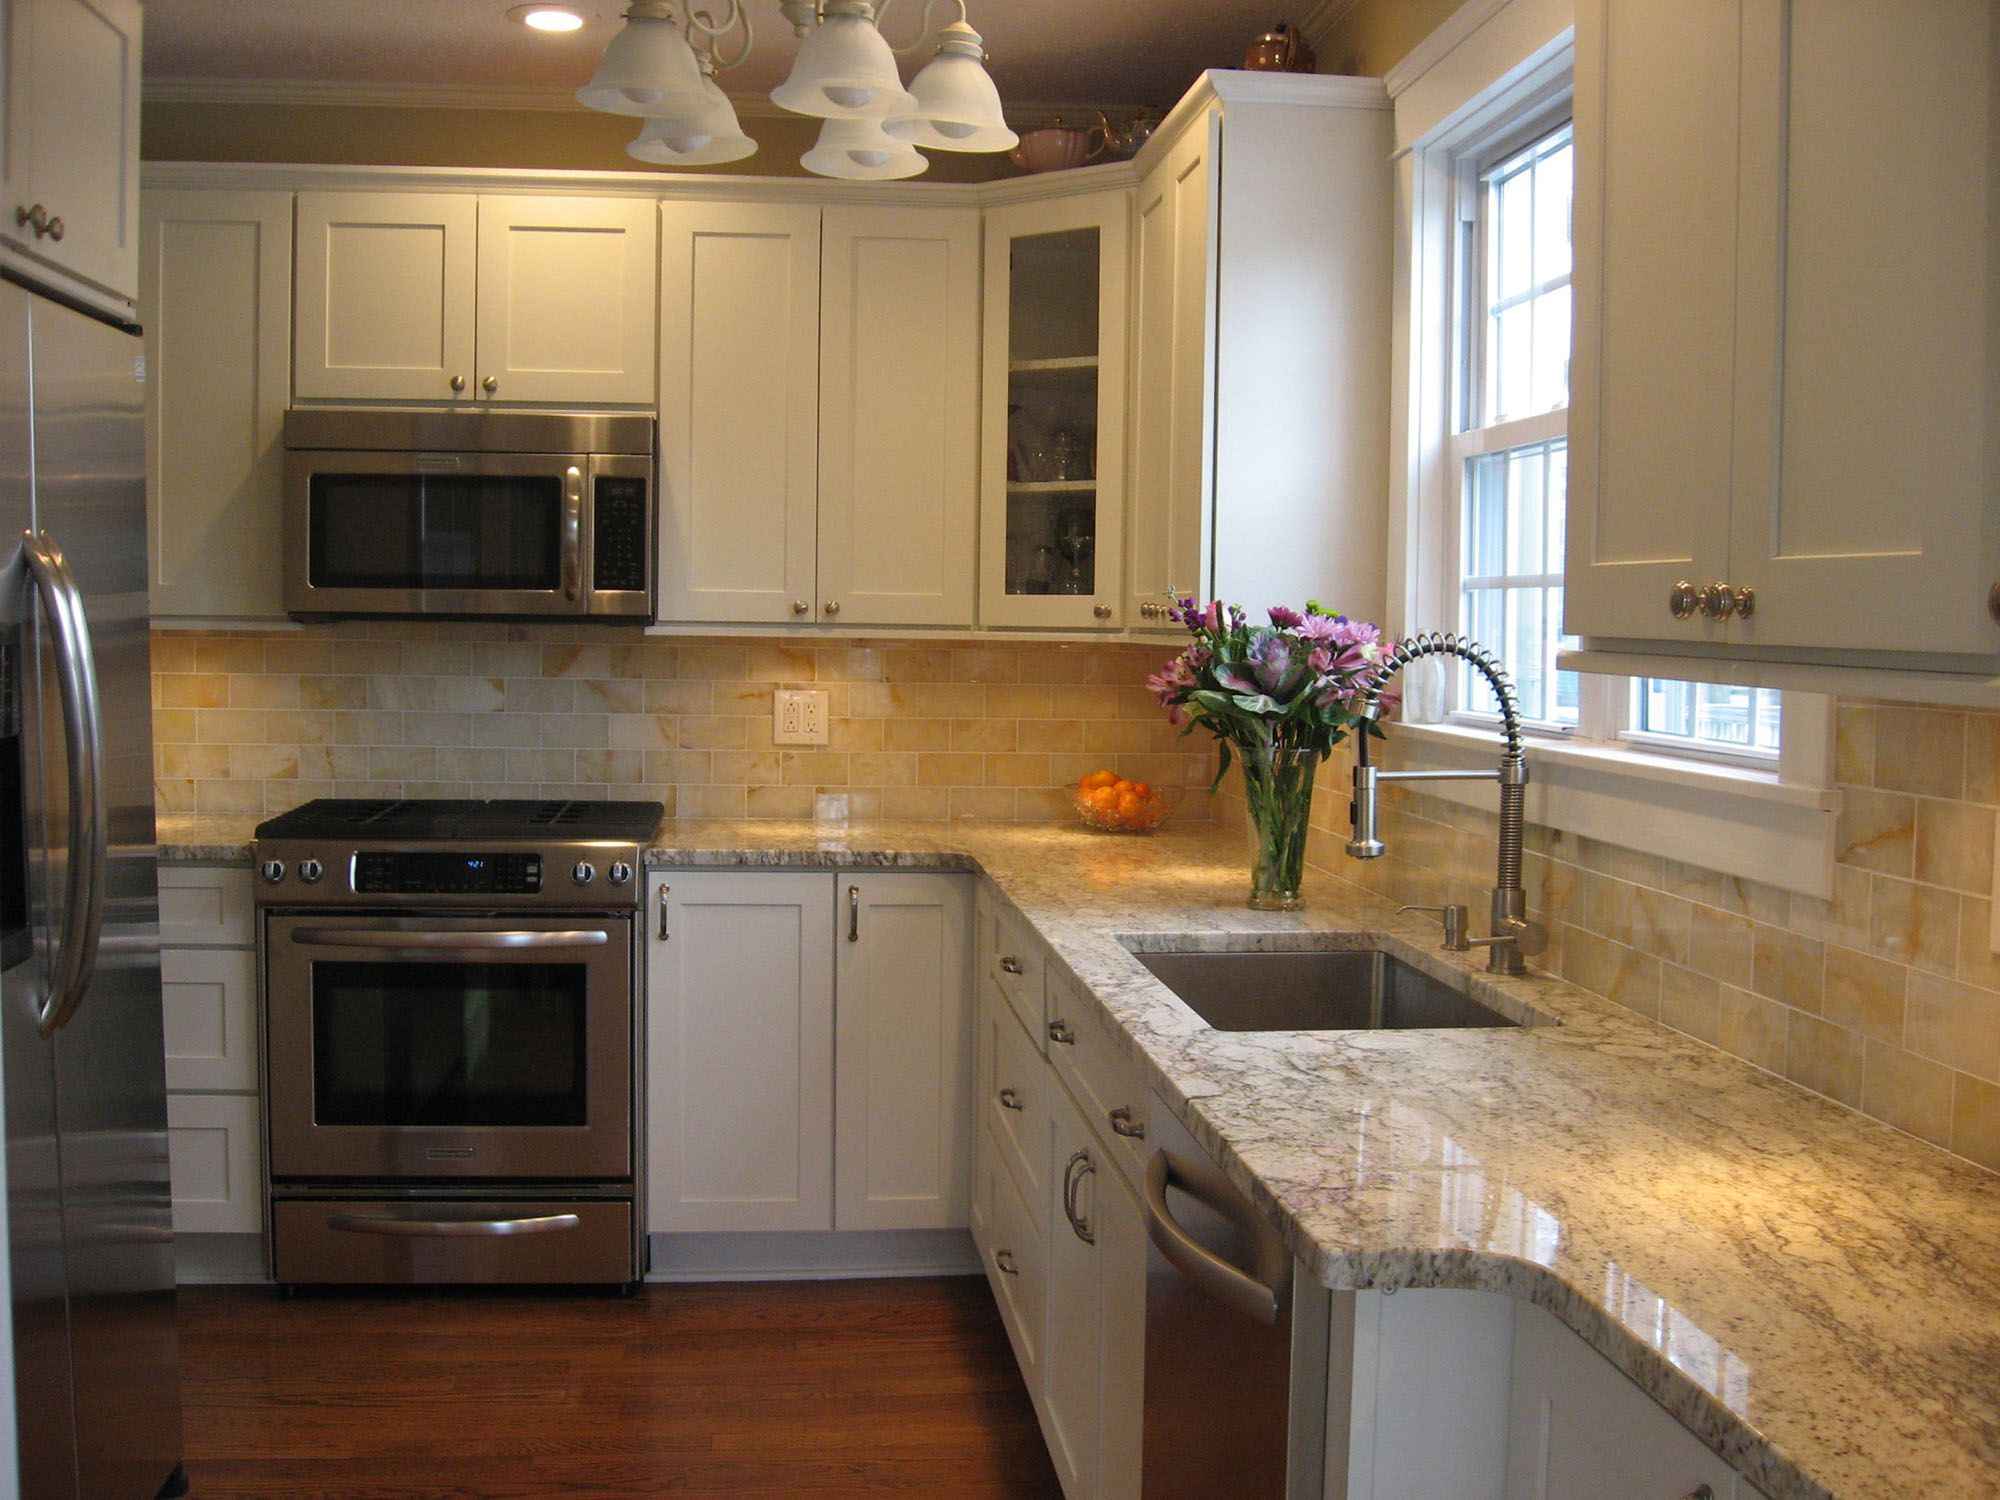 Kitchen Remodel Before After Gallery Kitchen Design White Kitchen Large Island Kitchen Cabinet Design